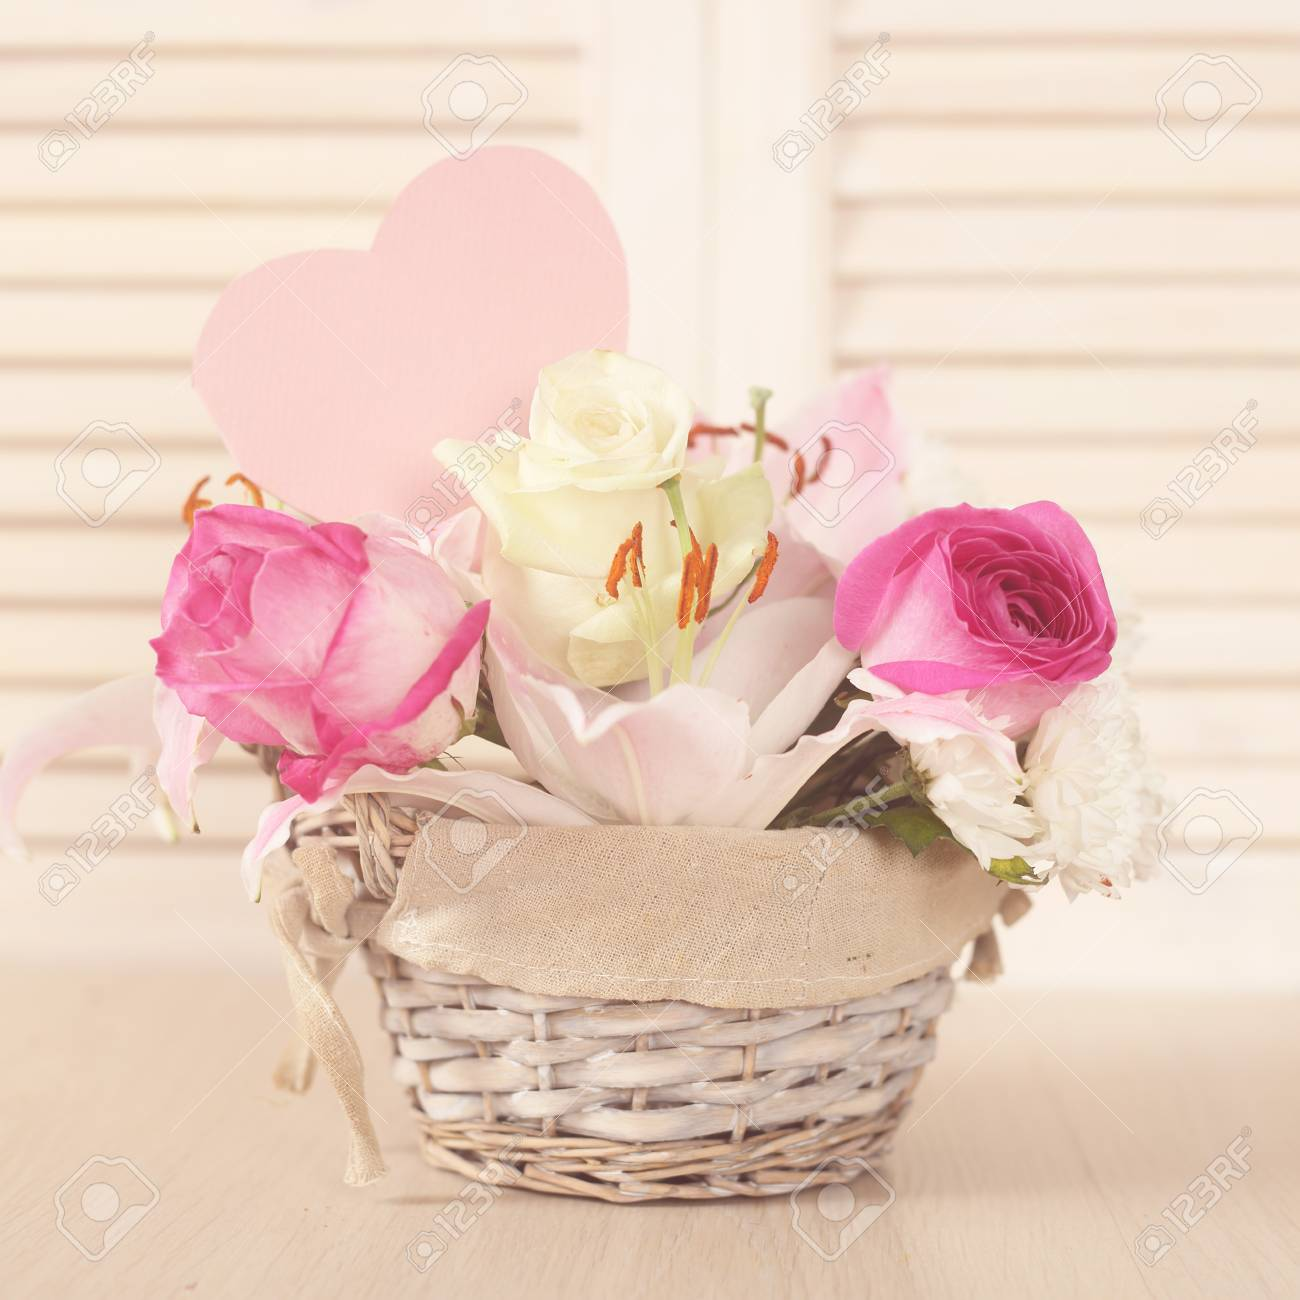 Beautiful flower composition in basket valentines day gift stock beautiful flower composition in basket valentines day gift stock photo 52393533 izmirmasajfo